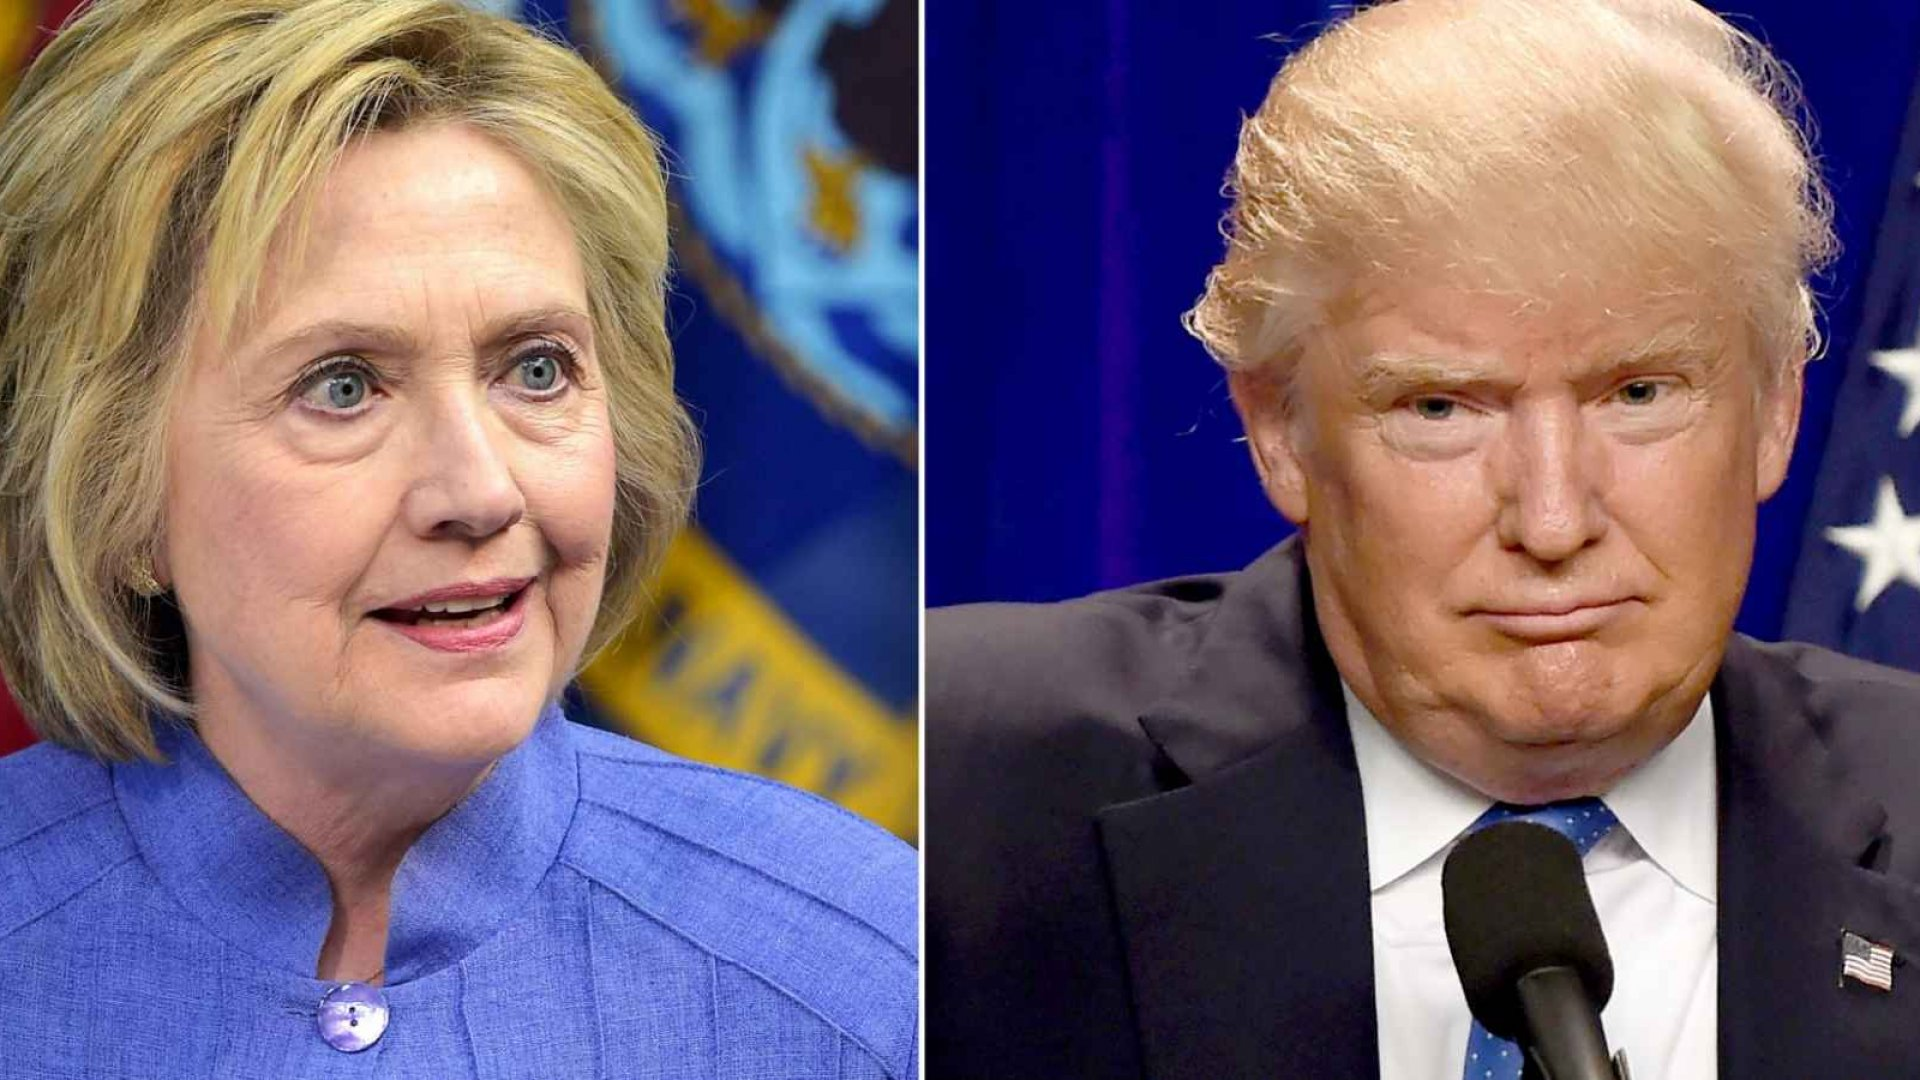 The Business Crisis Donald Trump and Hillary Clinton Are Ignoring